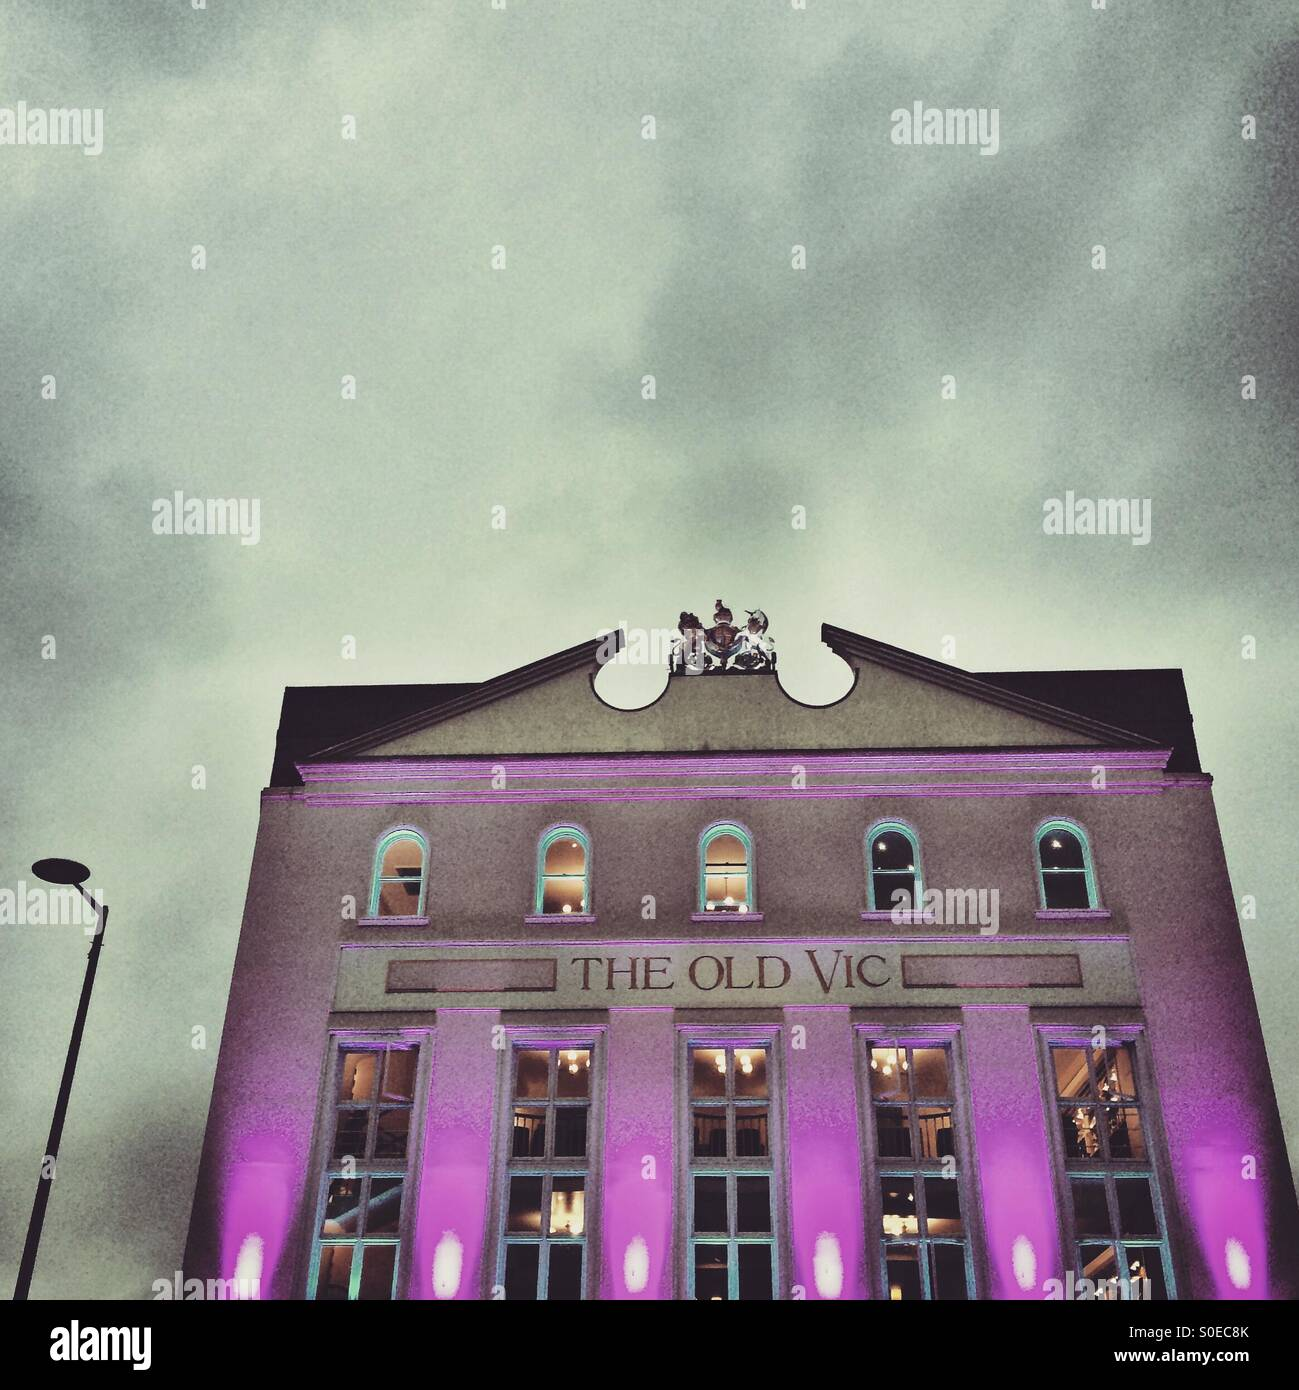 The Old Vic Theatre in London - Stock Image